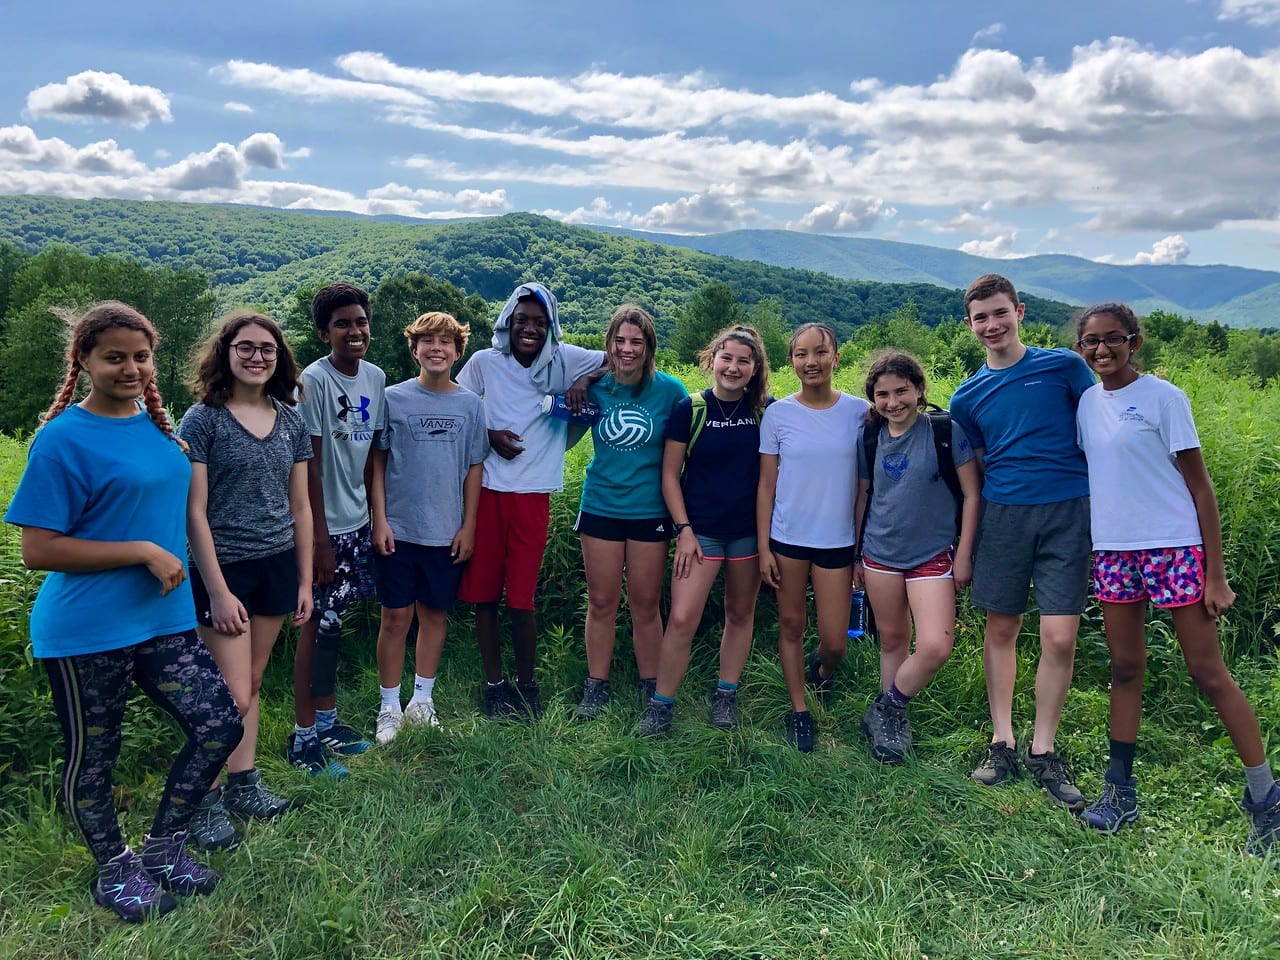 A group of campers takes a day hike in New England this Summer while on a writing program